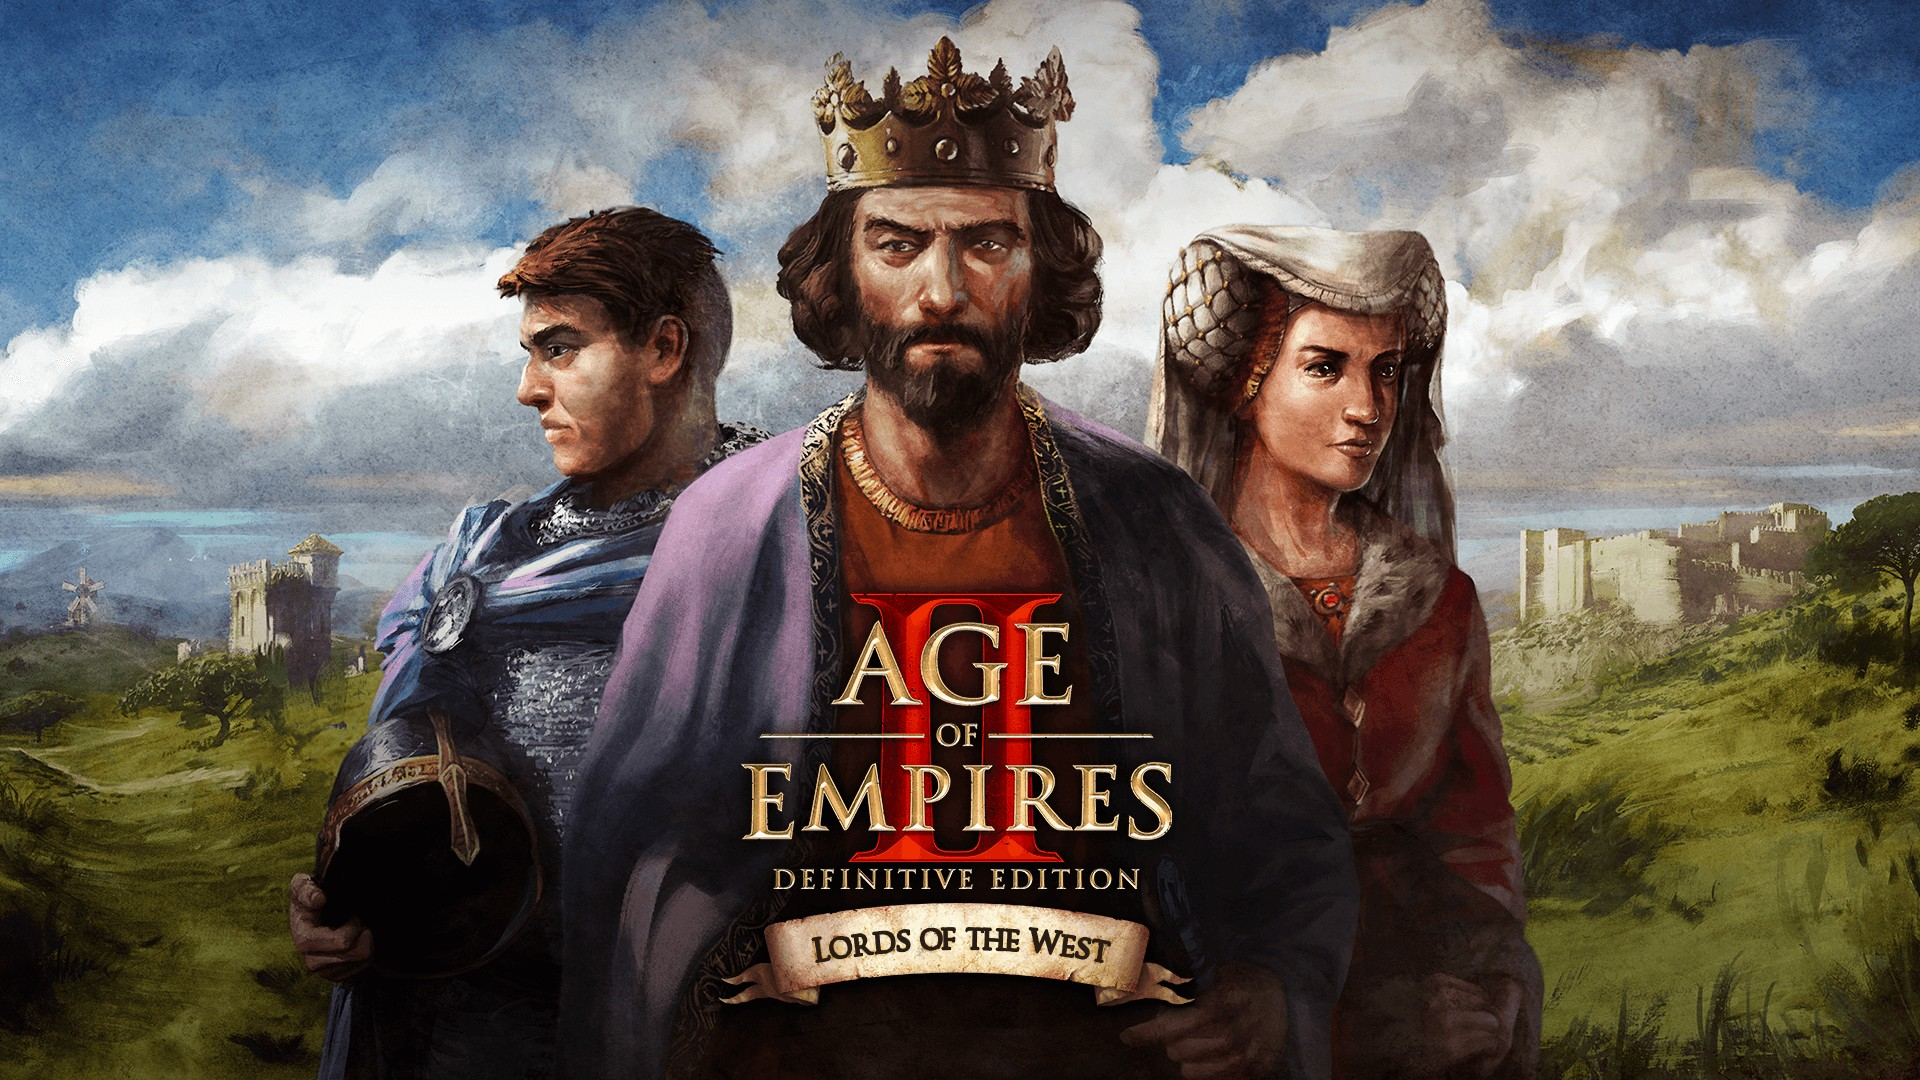 Video For The Lords of the West Have Arrived in Age of Empires II: Definitive Edition, Available Now